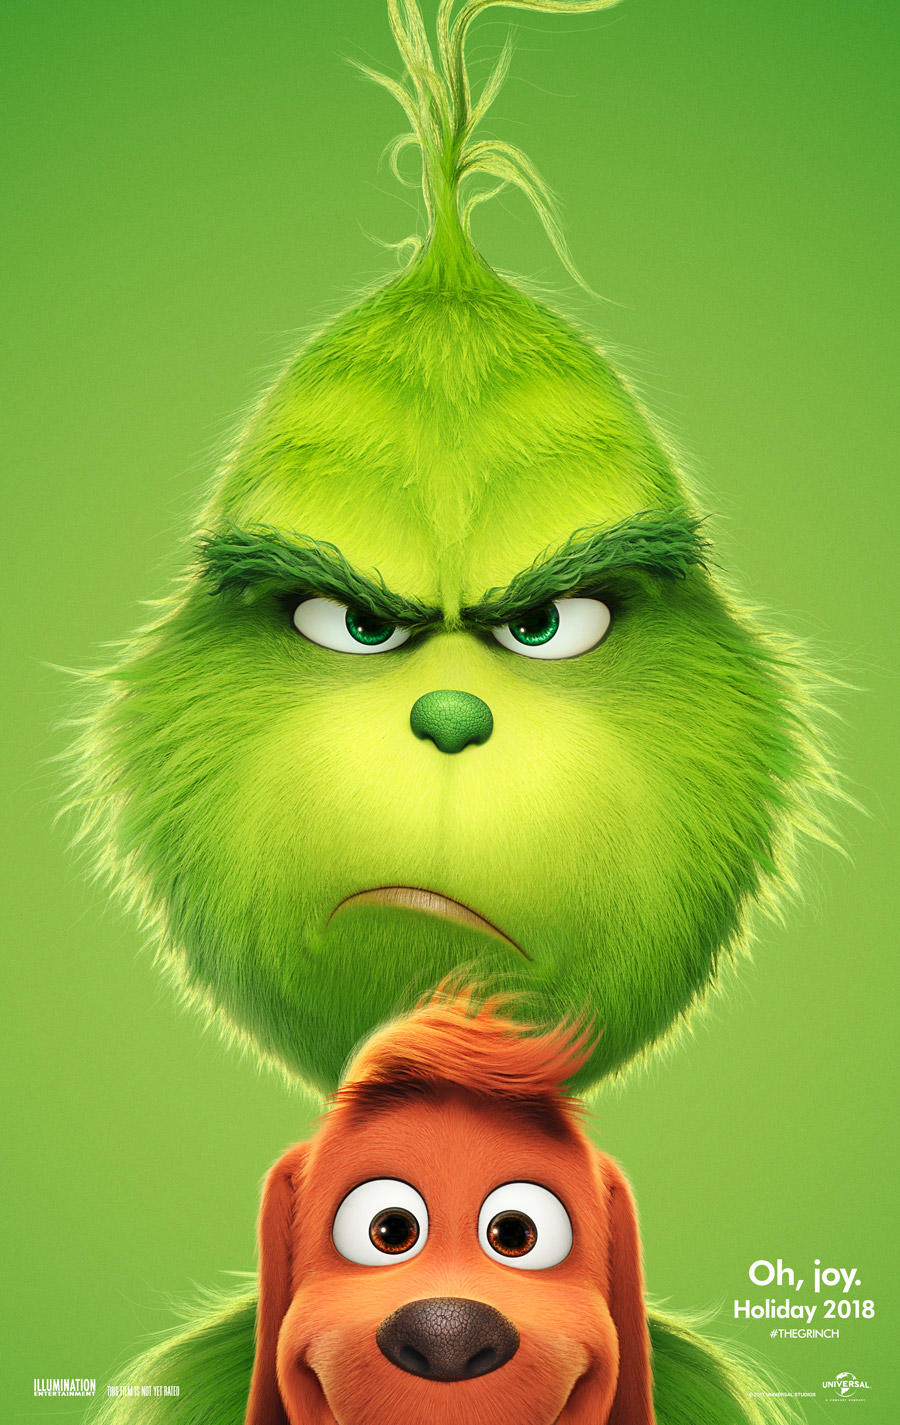 The Grinch poster art